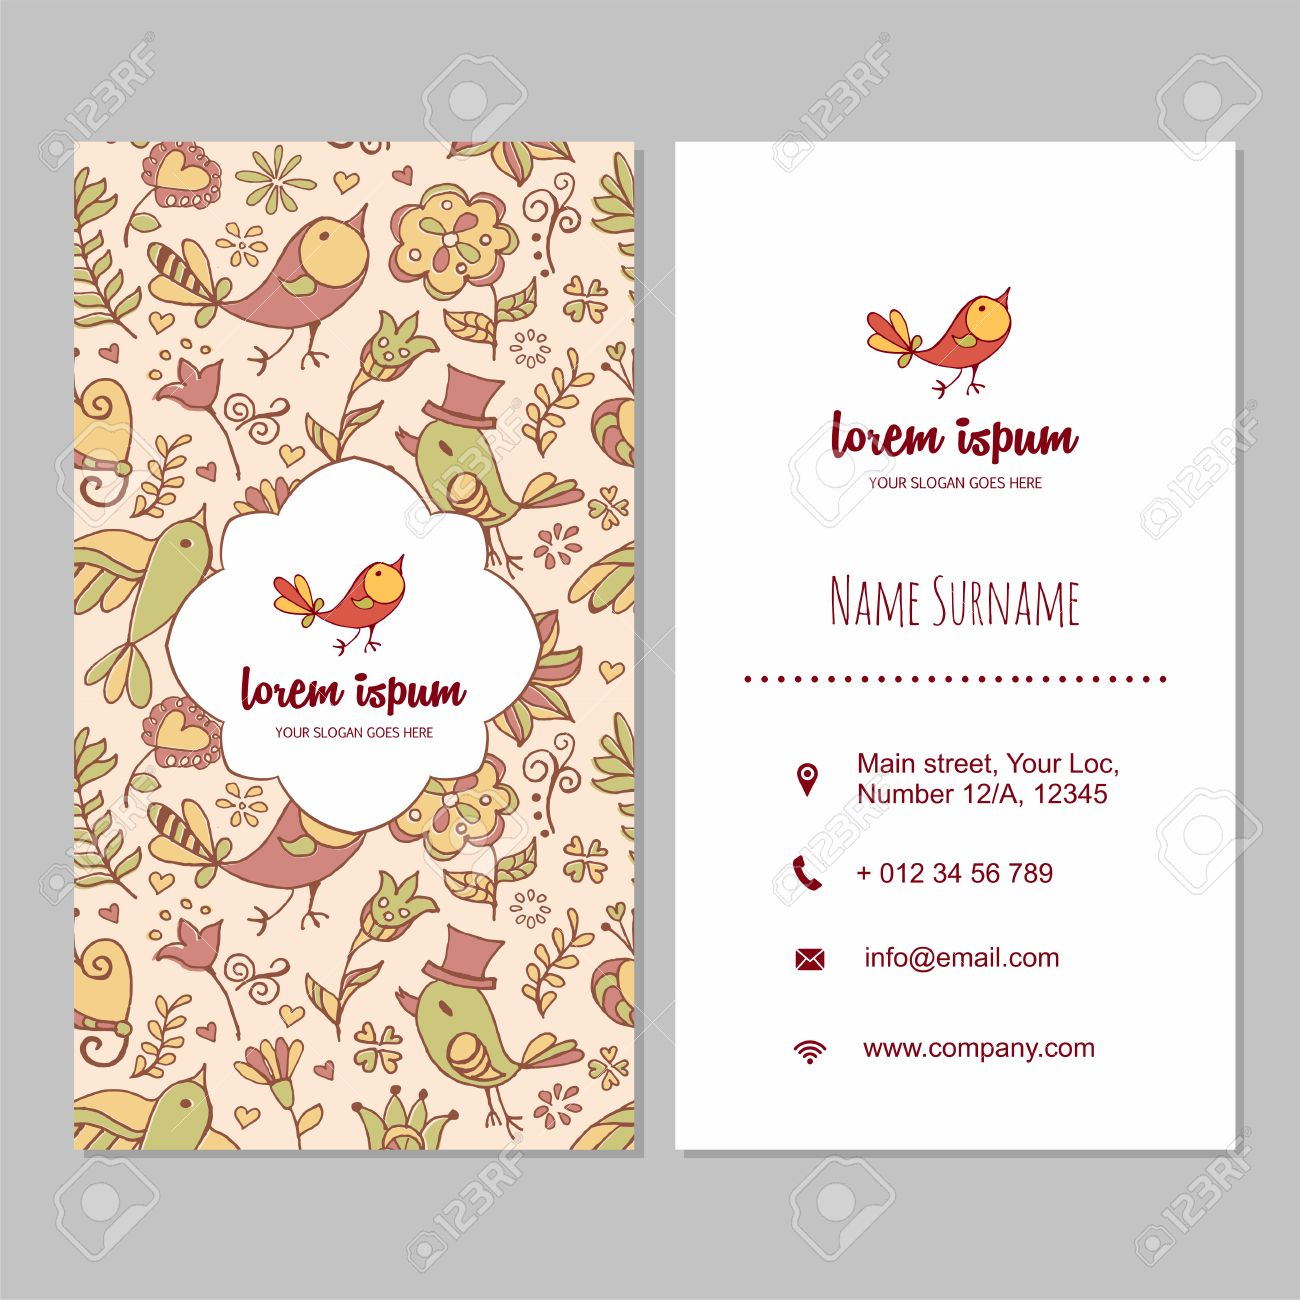 Visiting Card Or Business Card Set With Cute Hand Drawn Bird ...